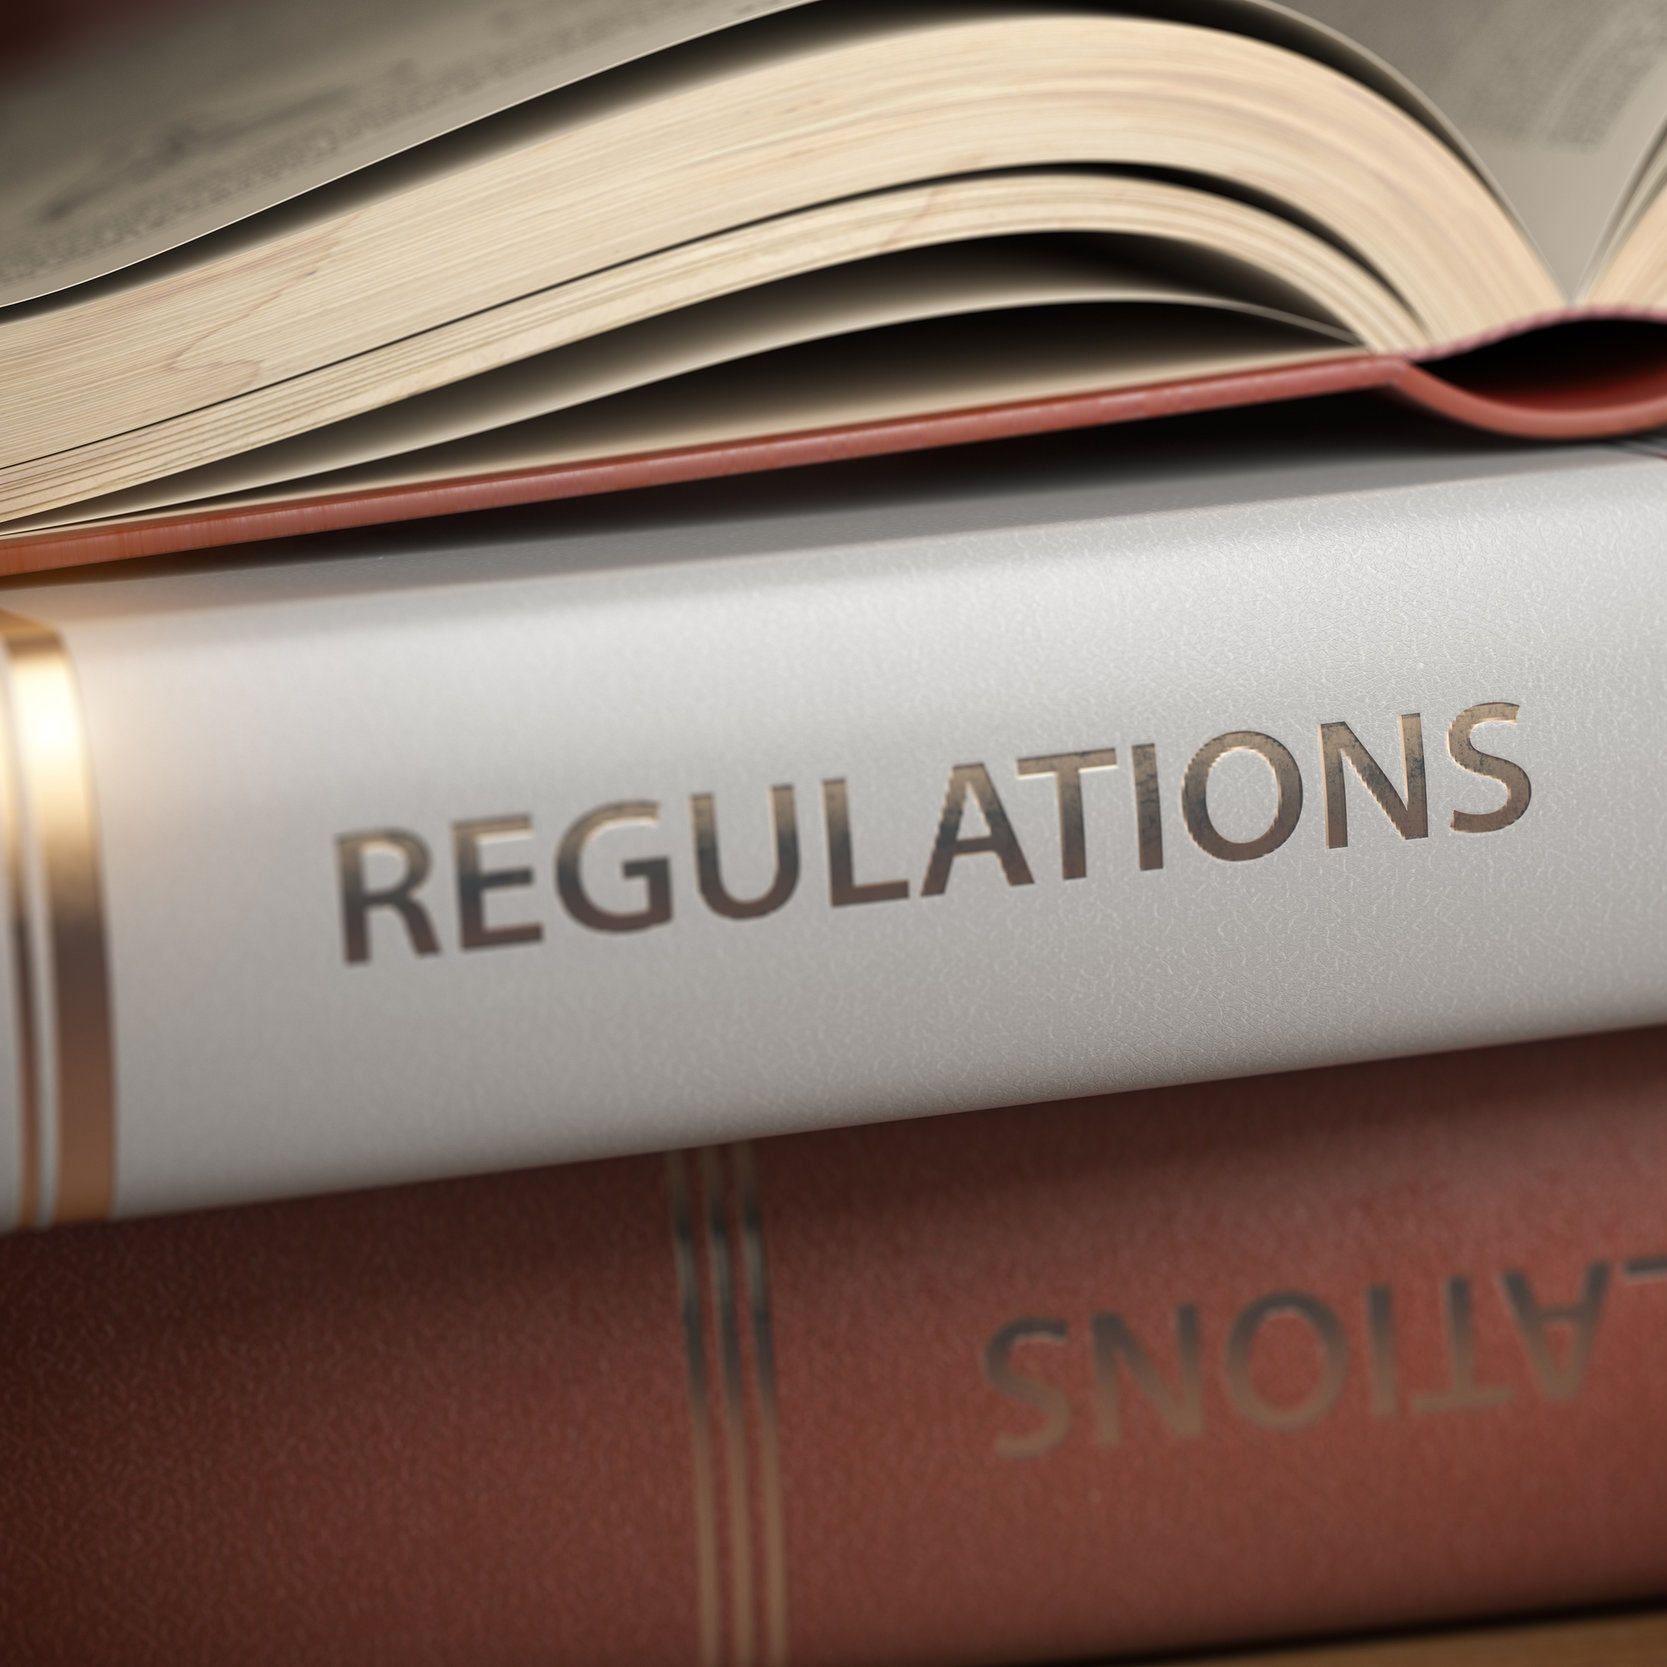 Encourage accountability - Scientists, organisations and companies funded by taxpayers must clearly communicate and disseminate their research outputs.The European Medicines Agency, for example, requires all clinical research results published on its website to include accompanying plain-language summaries.Automation speeds up this process, leaving more time for research, publishing and grant applications.